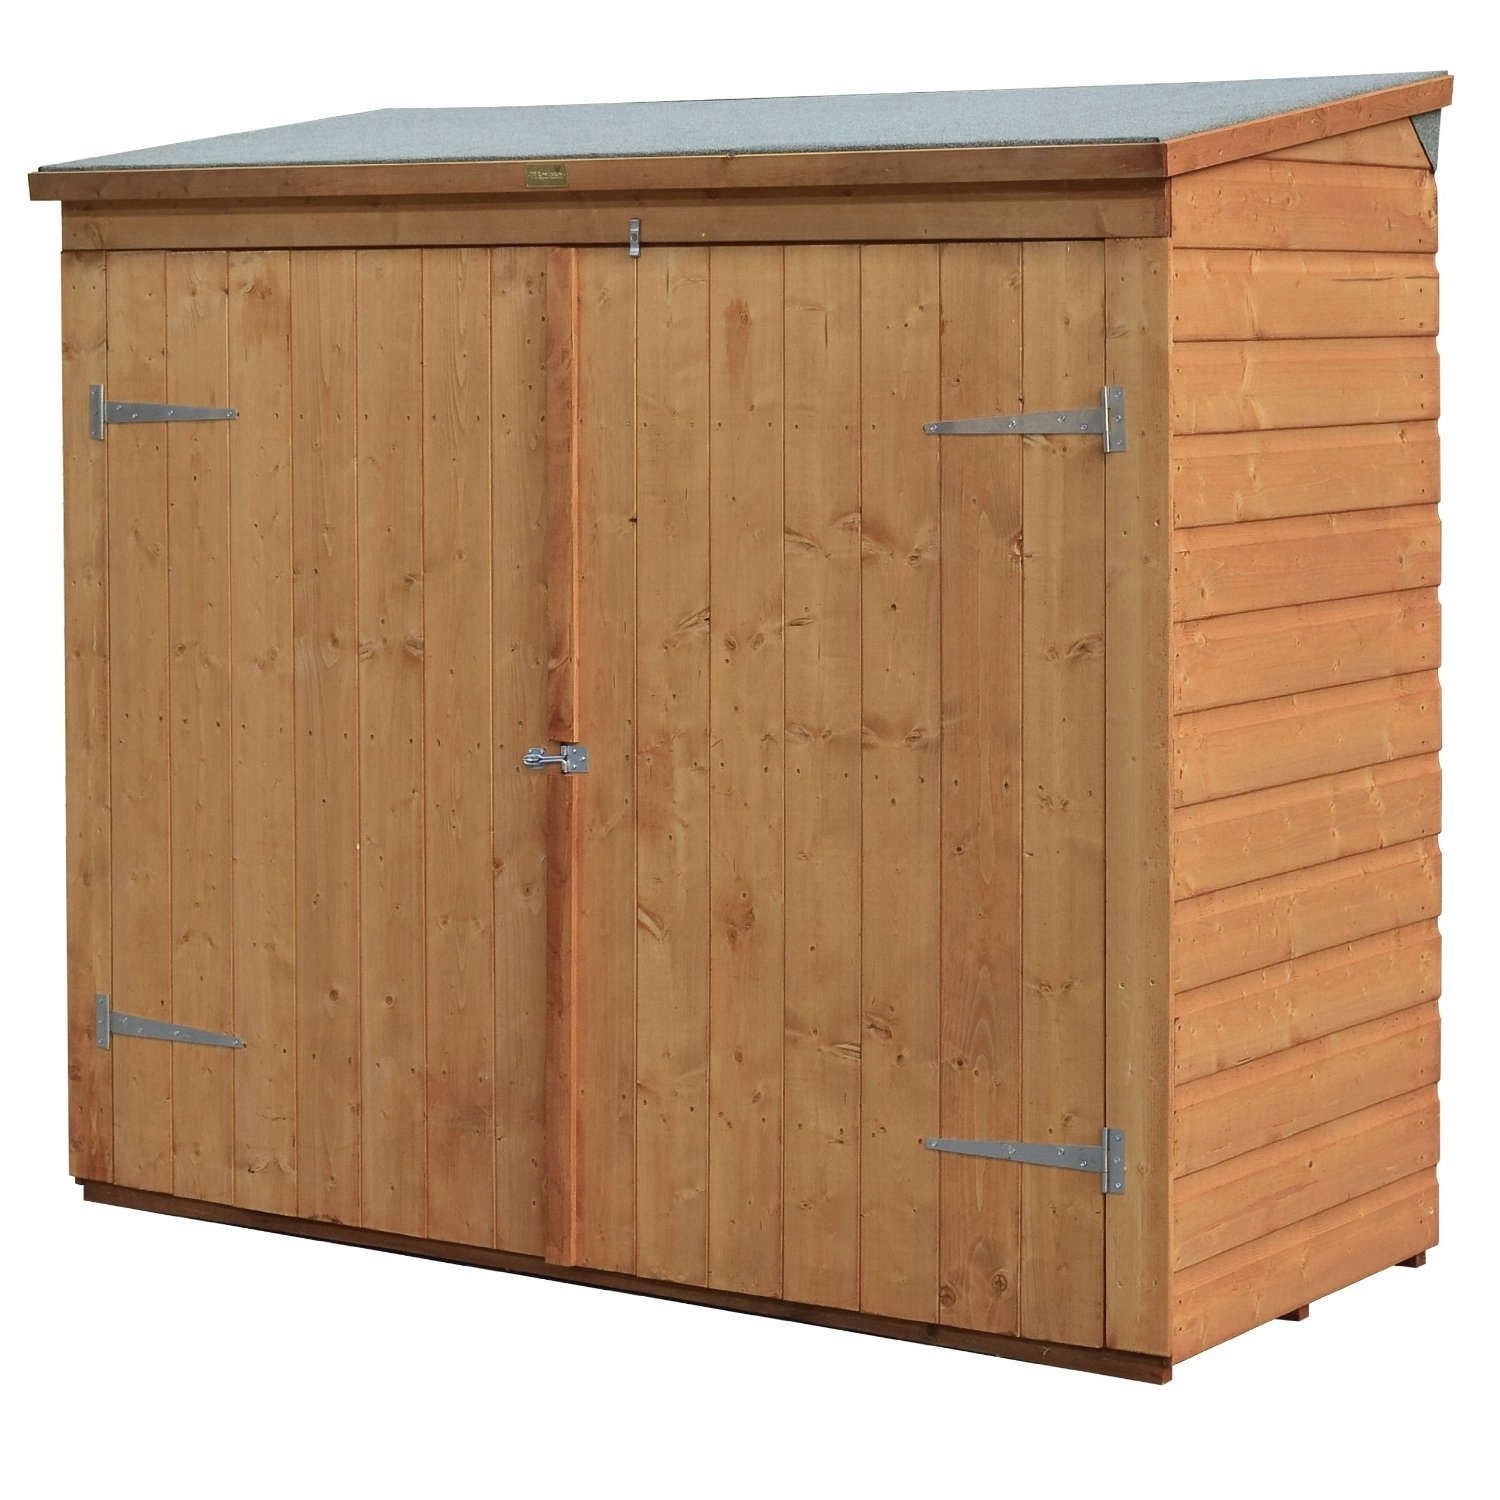 5 Favorites: Wooden Garden Sheds - The Organized Home